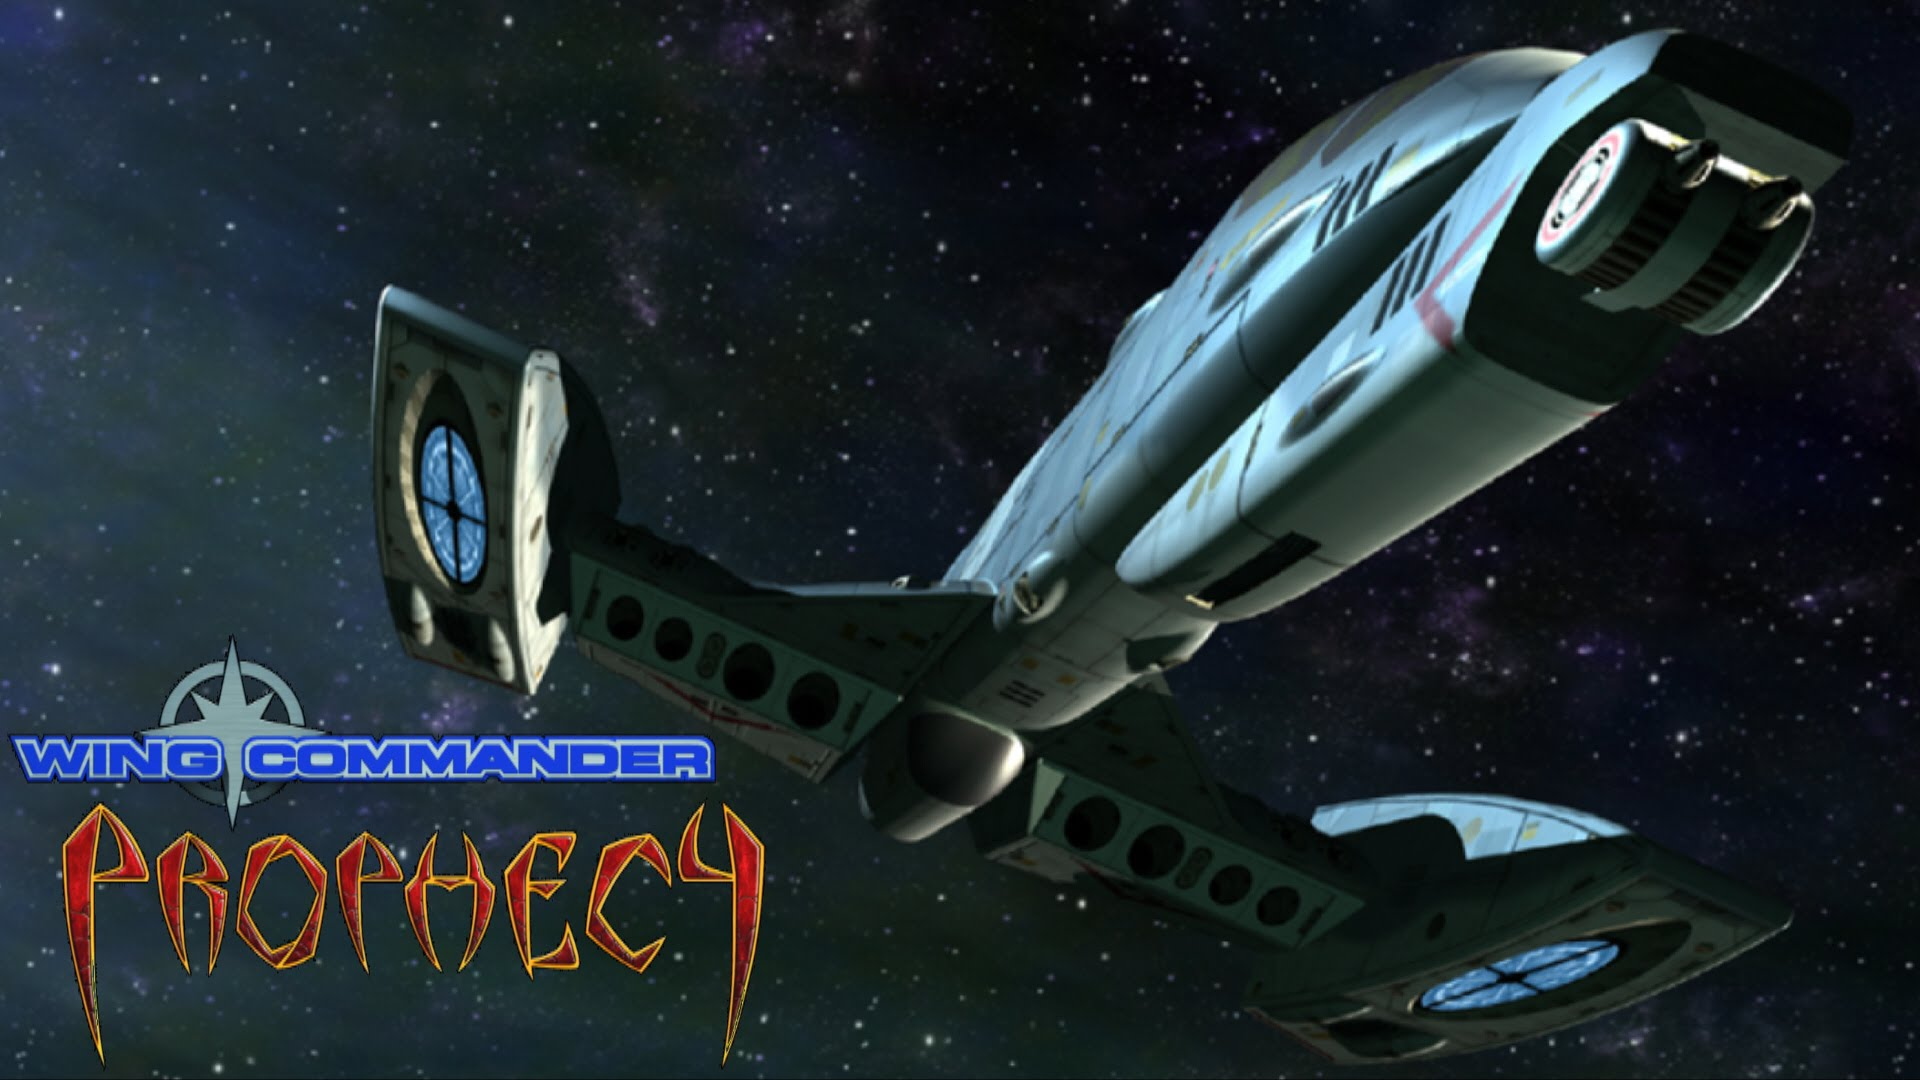 Most Viewed Wing Commander Prophecy Wallpapers 4k Wallpapers